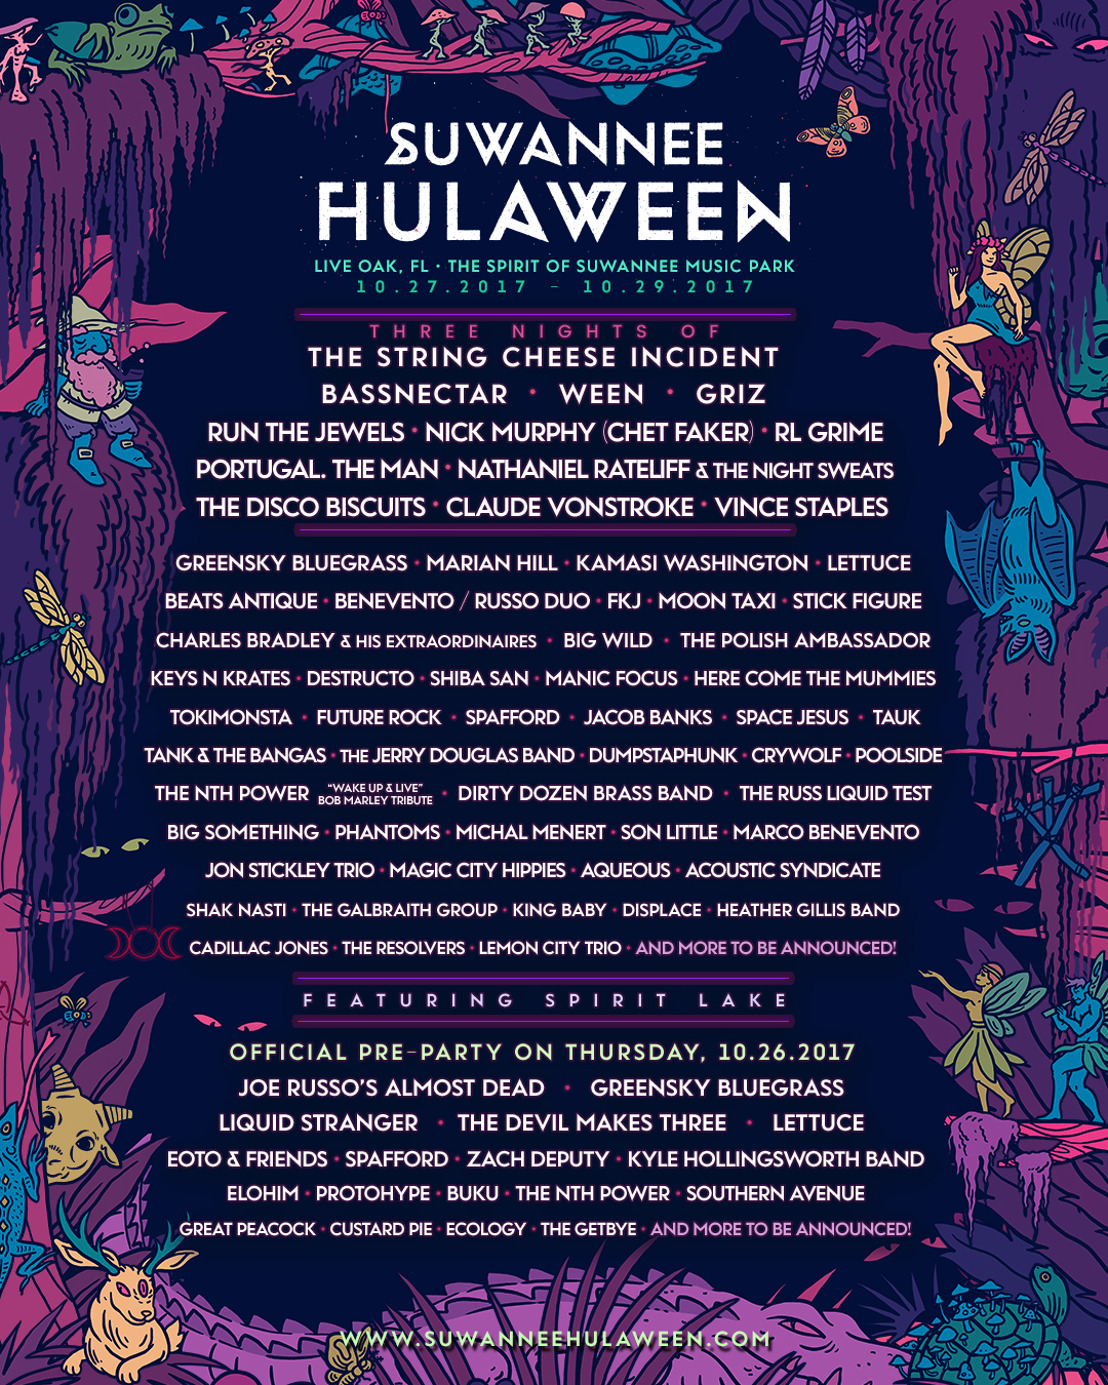 Suwannee Hulaween Announces Lineup for October 27-29 2017 Event at The Spirit of the Suwannee Music Park in Live Oak, Florida